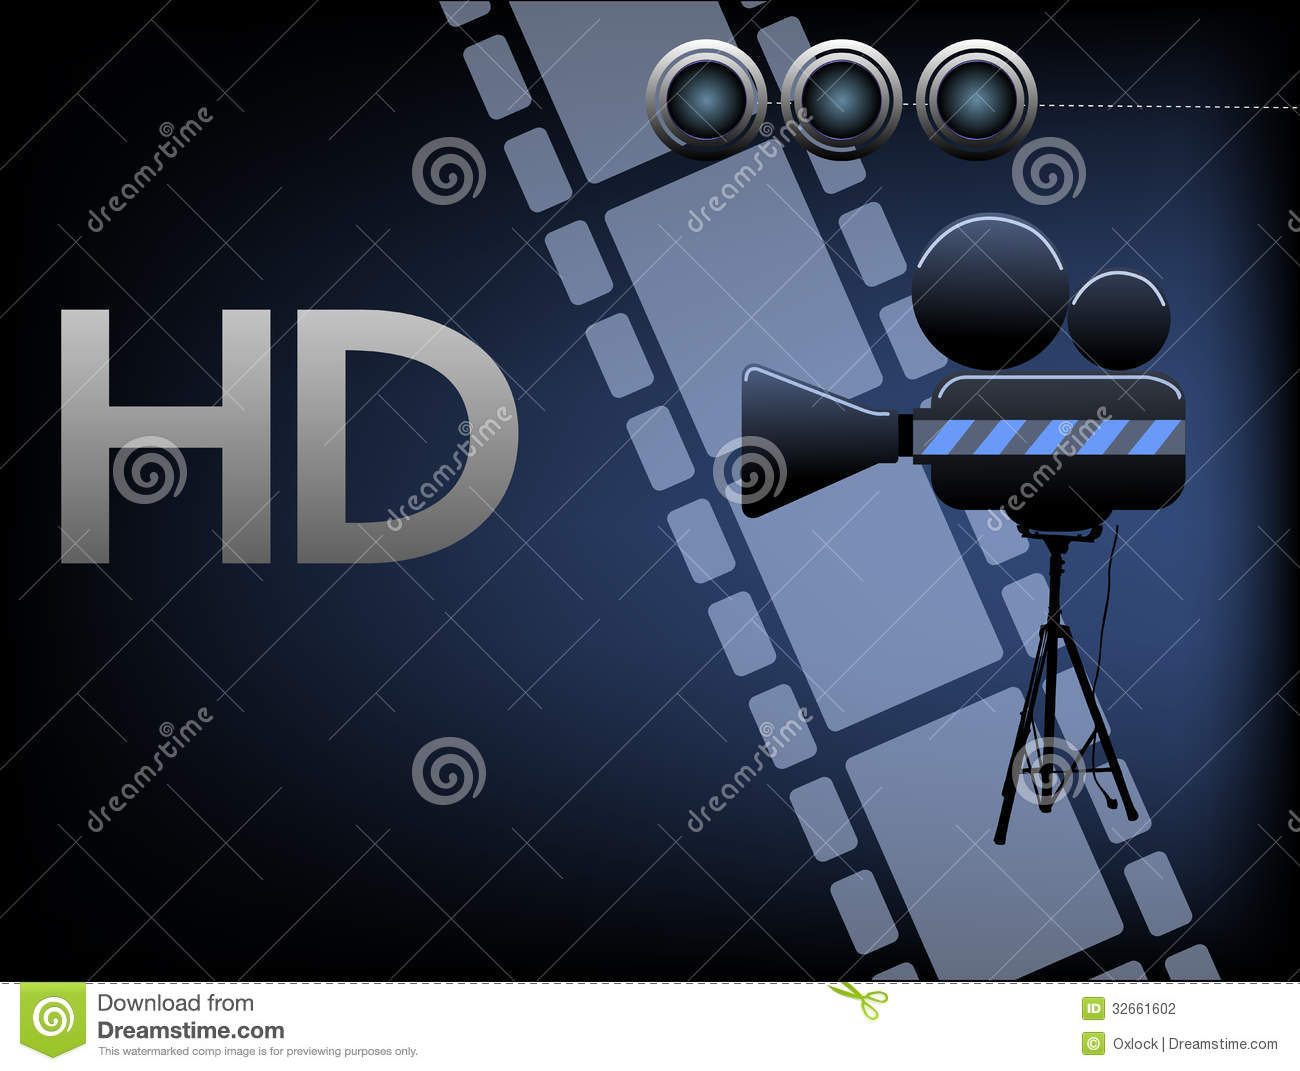 Abstract colorful background with movie projector, filmstrip and the